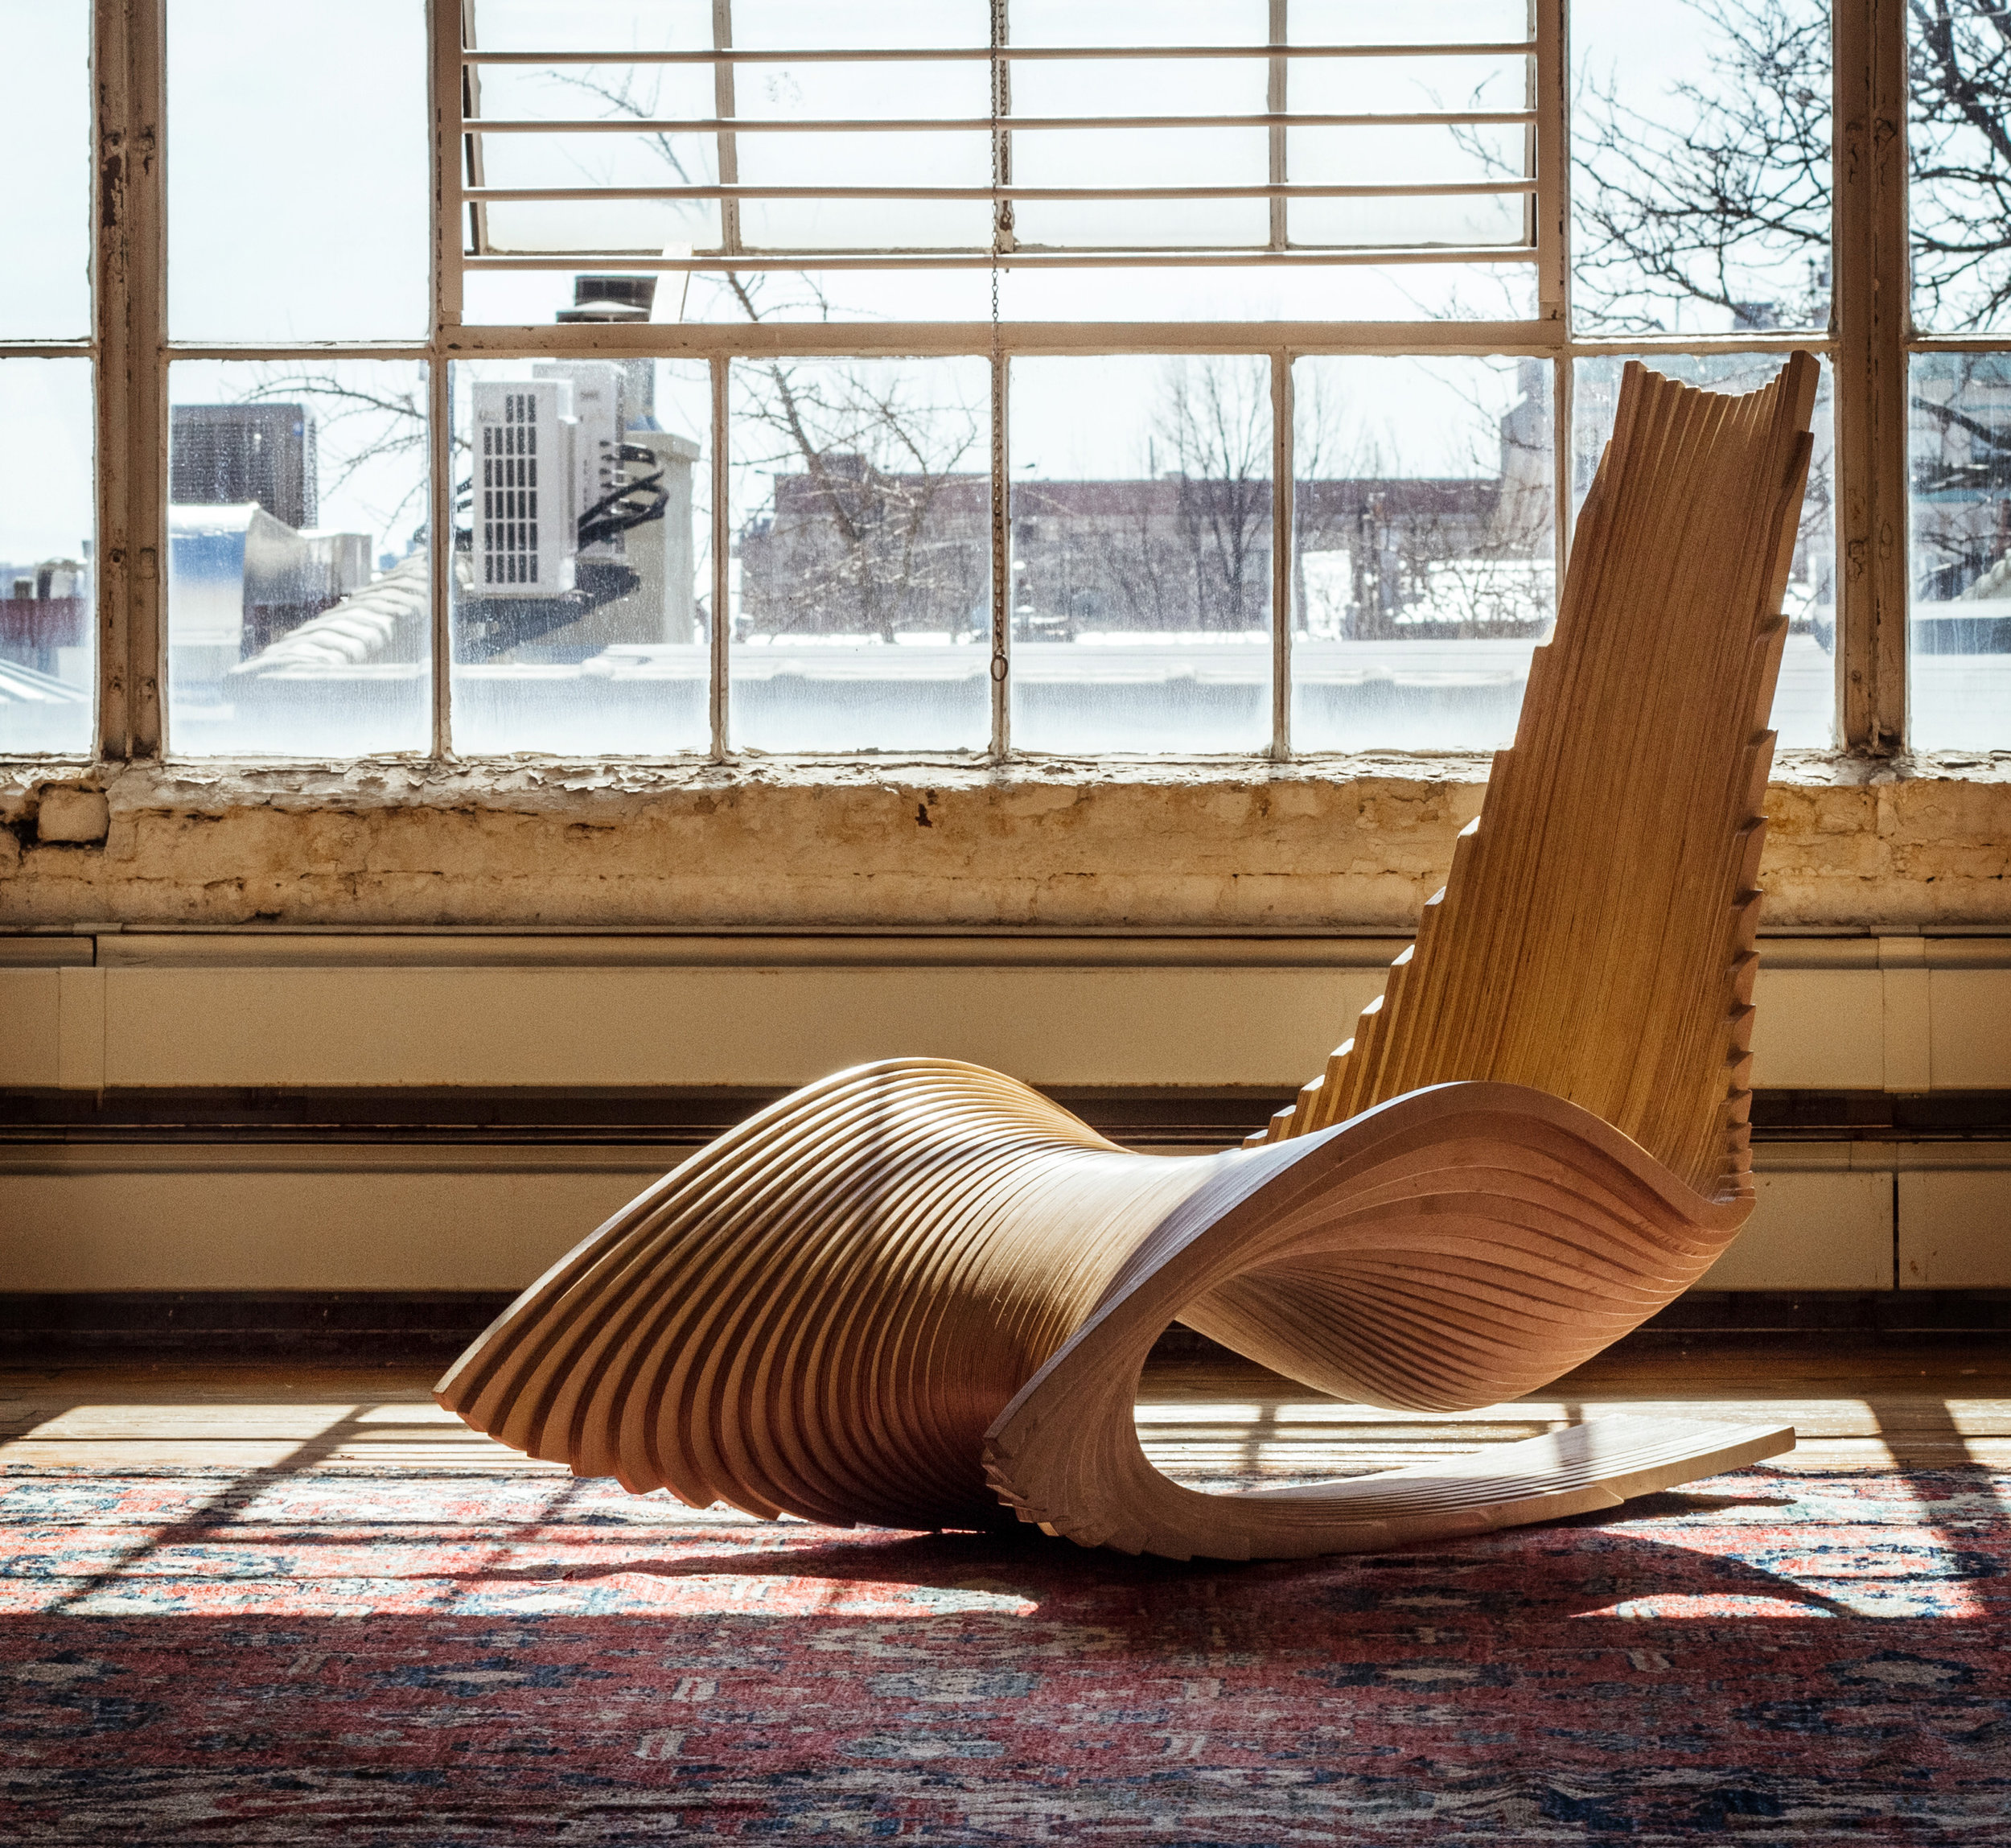 Ahmed El Husseiny/AE Superlab.  The Diwani Chair , 2015. Atlantic birch plywood.42 x 31 x 53 in.Courtesy of Ahmed El Husseiny/AE Superlab.2016.AES.01. Photo:  Ahmed ElHusseiny/AE Superlab  METHOD: CNC router, hand block sander